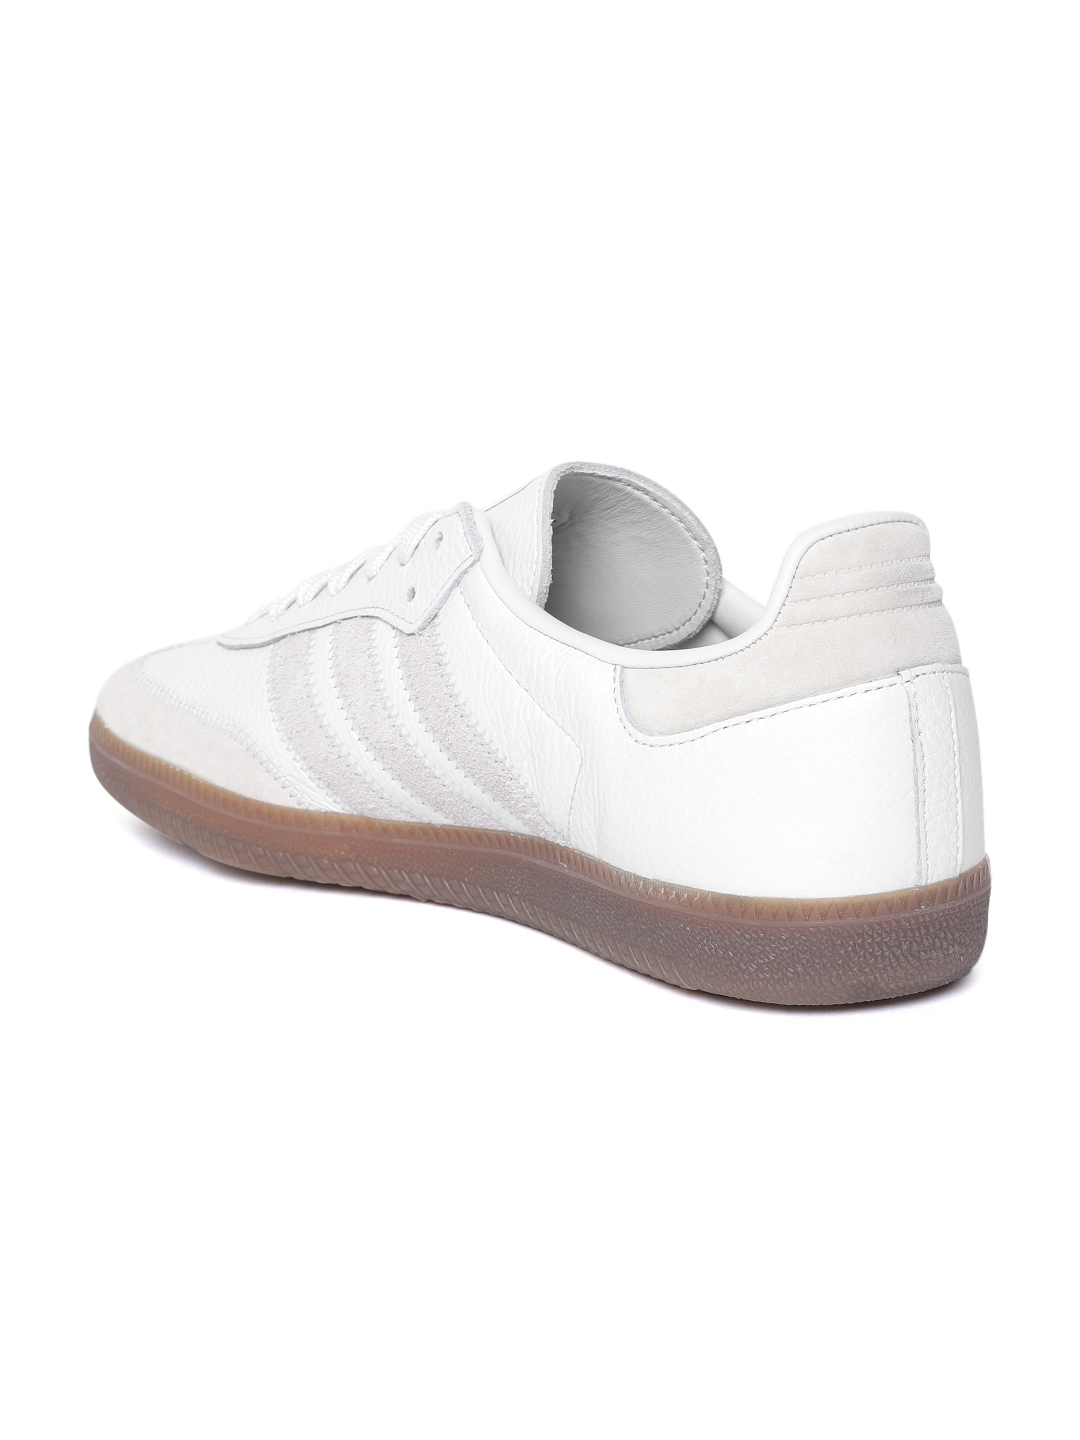 e6c29d181 Buy ADIDAS Originals Men White Samba OG FT Leather Sneakers - Casual ...